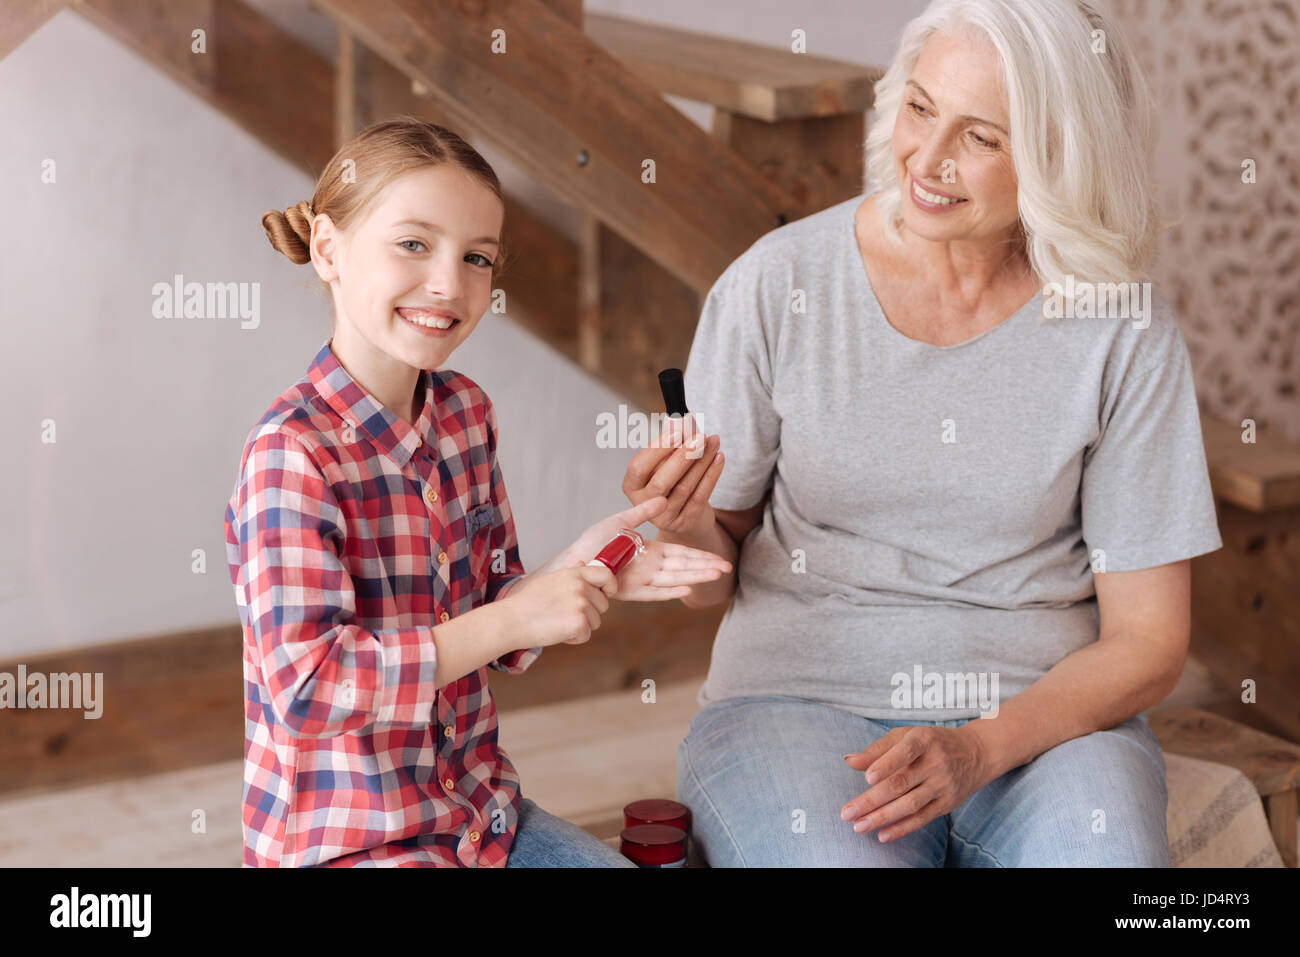 Positive cheerful girl holding a nail varnish bottle - Stock Image